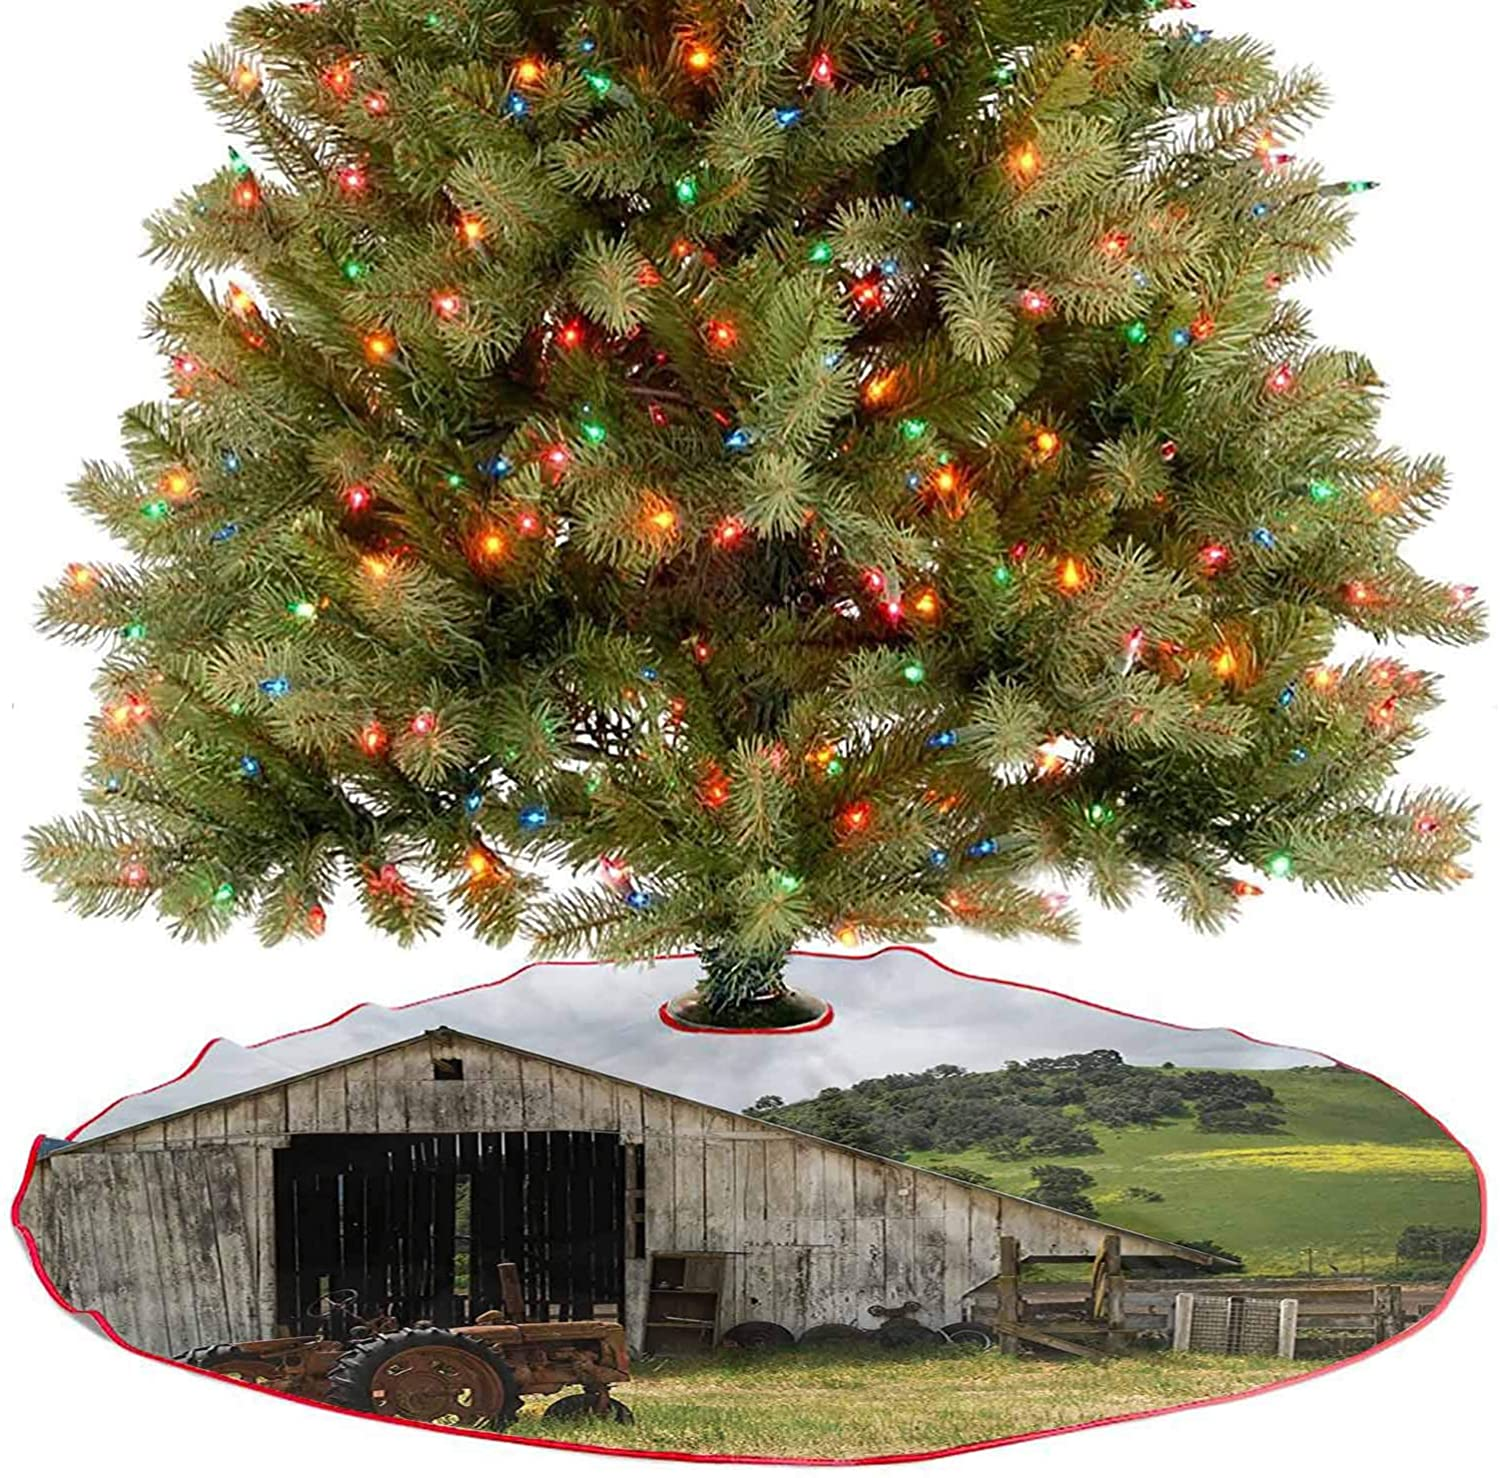 Tree Skirt Old Wooden Barn with Rusted Tractor on Hillside Enclosed with Wooden New Year Party Supply A Simple But Elegant Design - 30 Inch